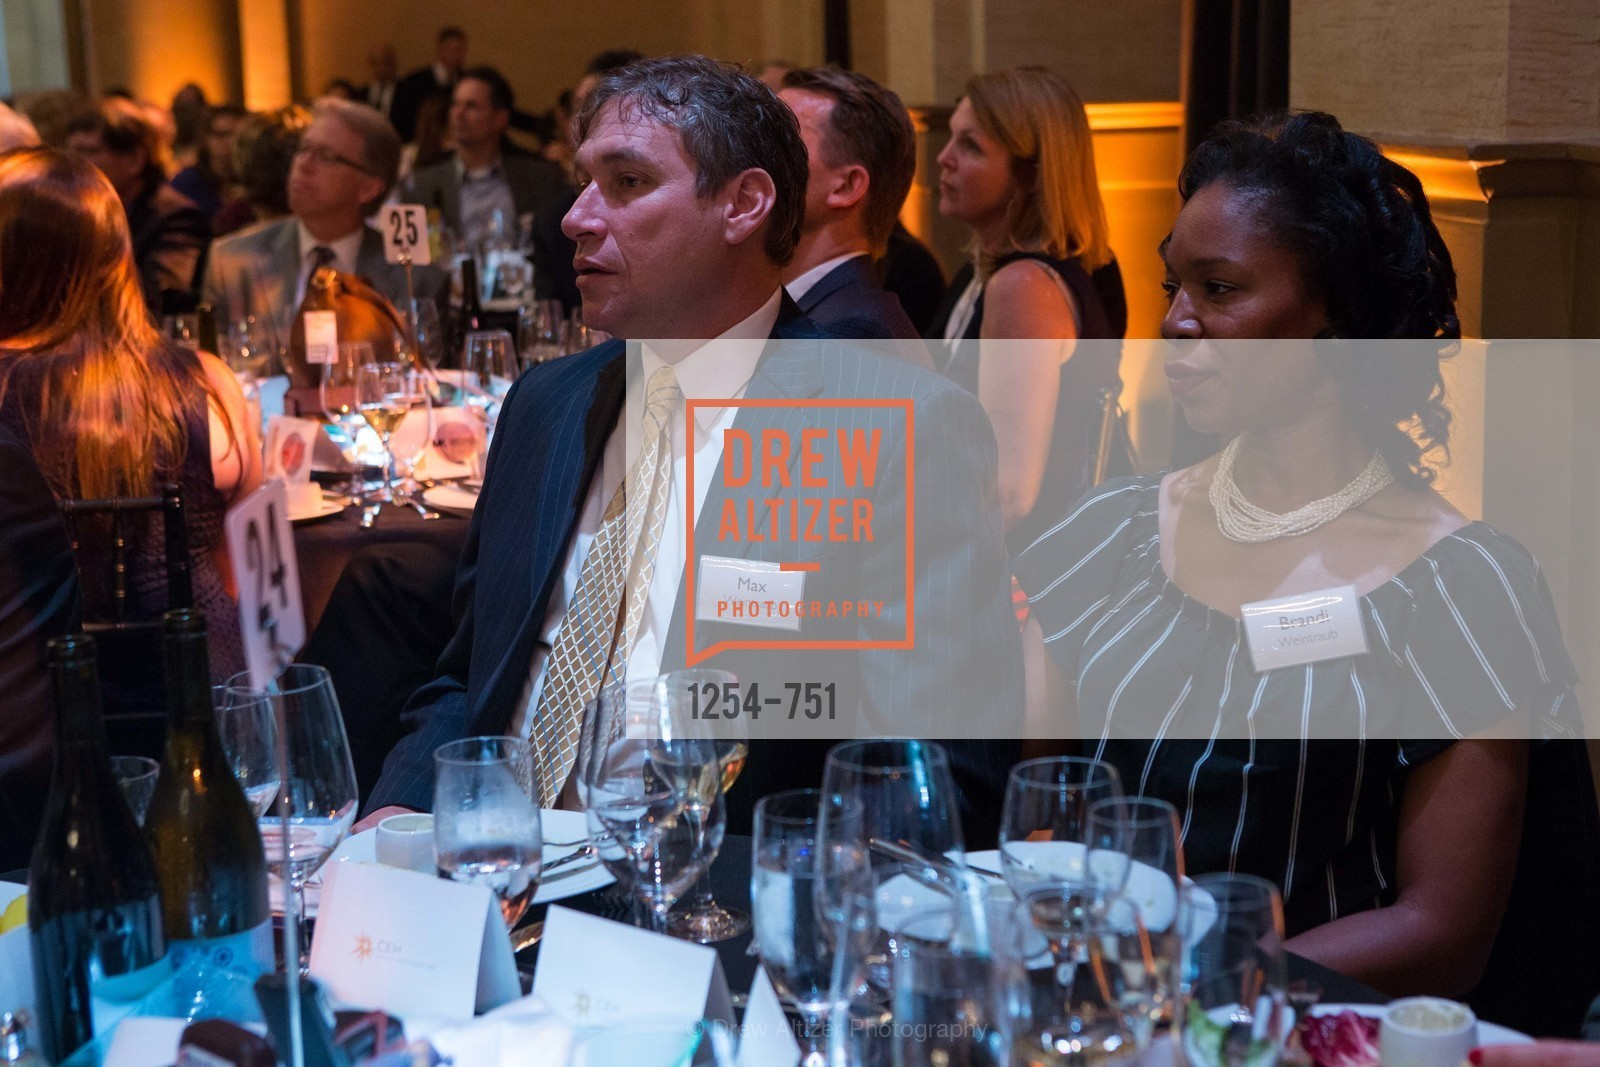 Max Weintraub, Brandi Weintraub, CENTER FOR ENVIRONMENTAL HEALTH (CEH) 2015 Gala, US, May 28th, 2015,Drew Altizer, Drew Altizer Photography, full-service agency, private events, San Francisco photographer, photographer california